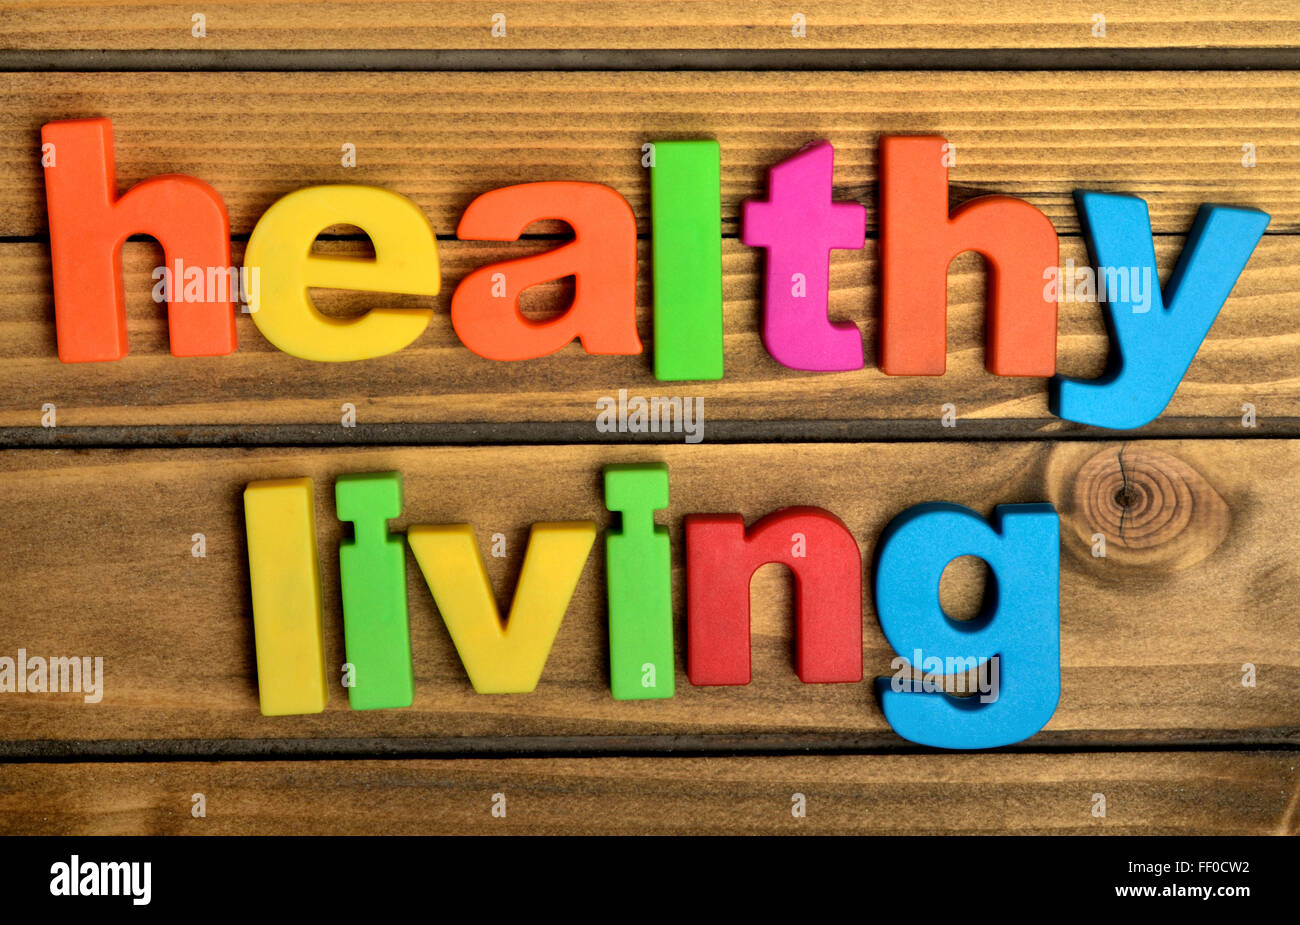 Healthy living word on wooden table - Stock Image